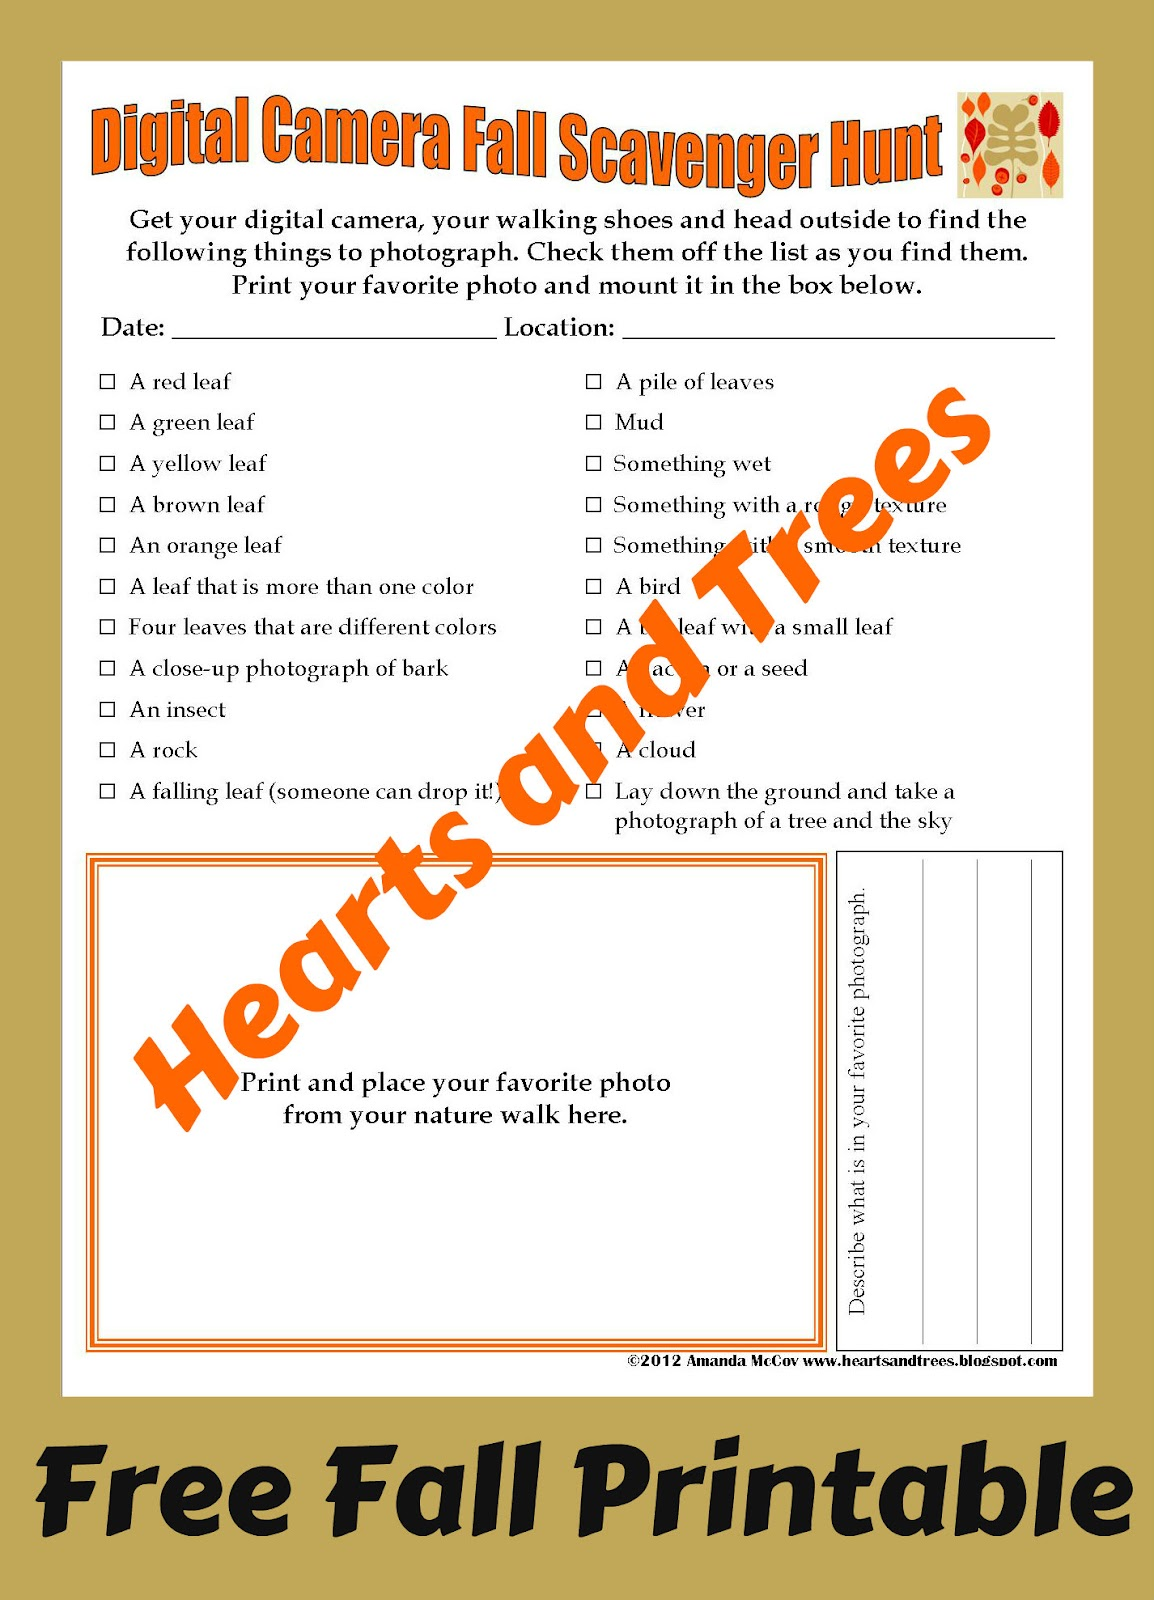 Hearts And Trees Digital Camera Scavenger Hunt Free Printable